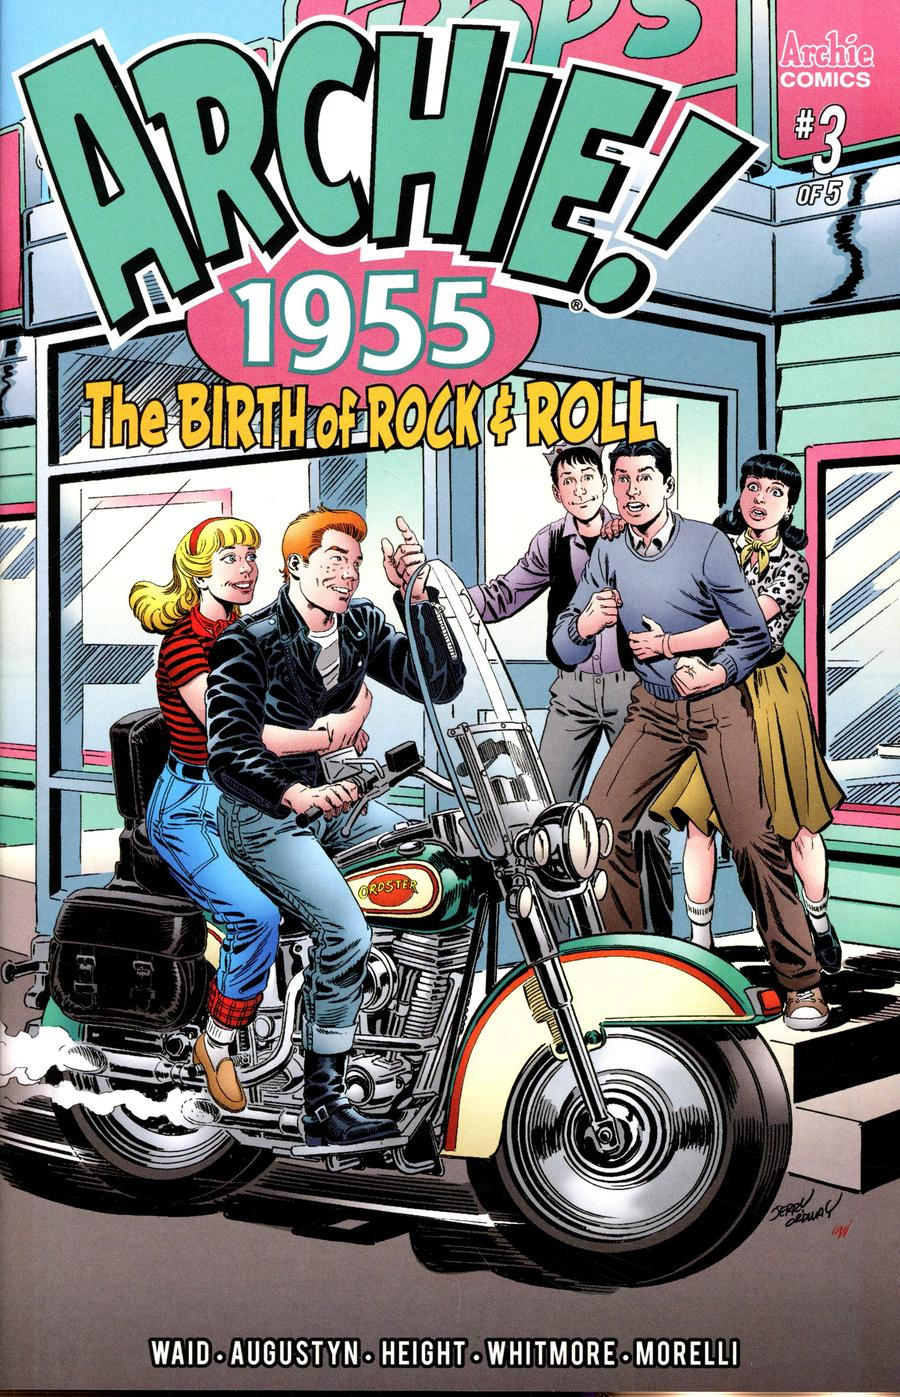 Archie 1955 #3 Cover B Variant Jerry Ordway & Glenn Whitmore Cover